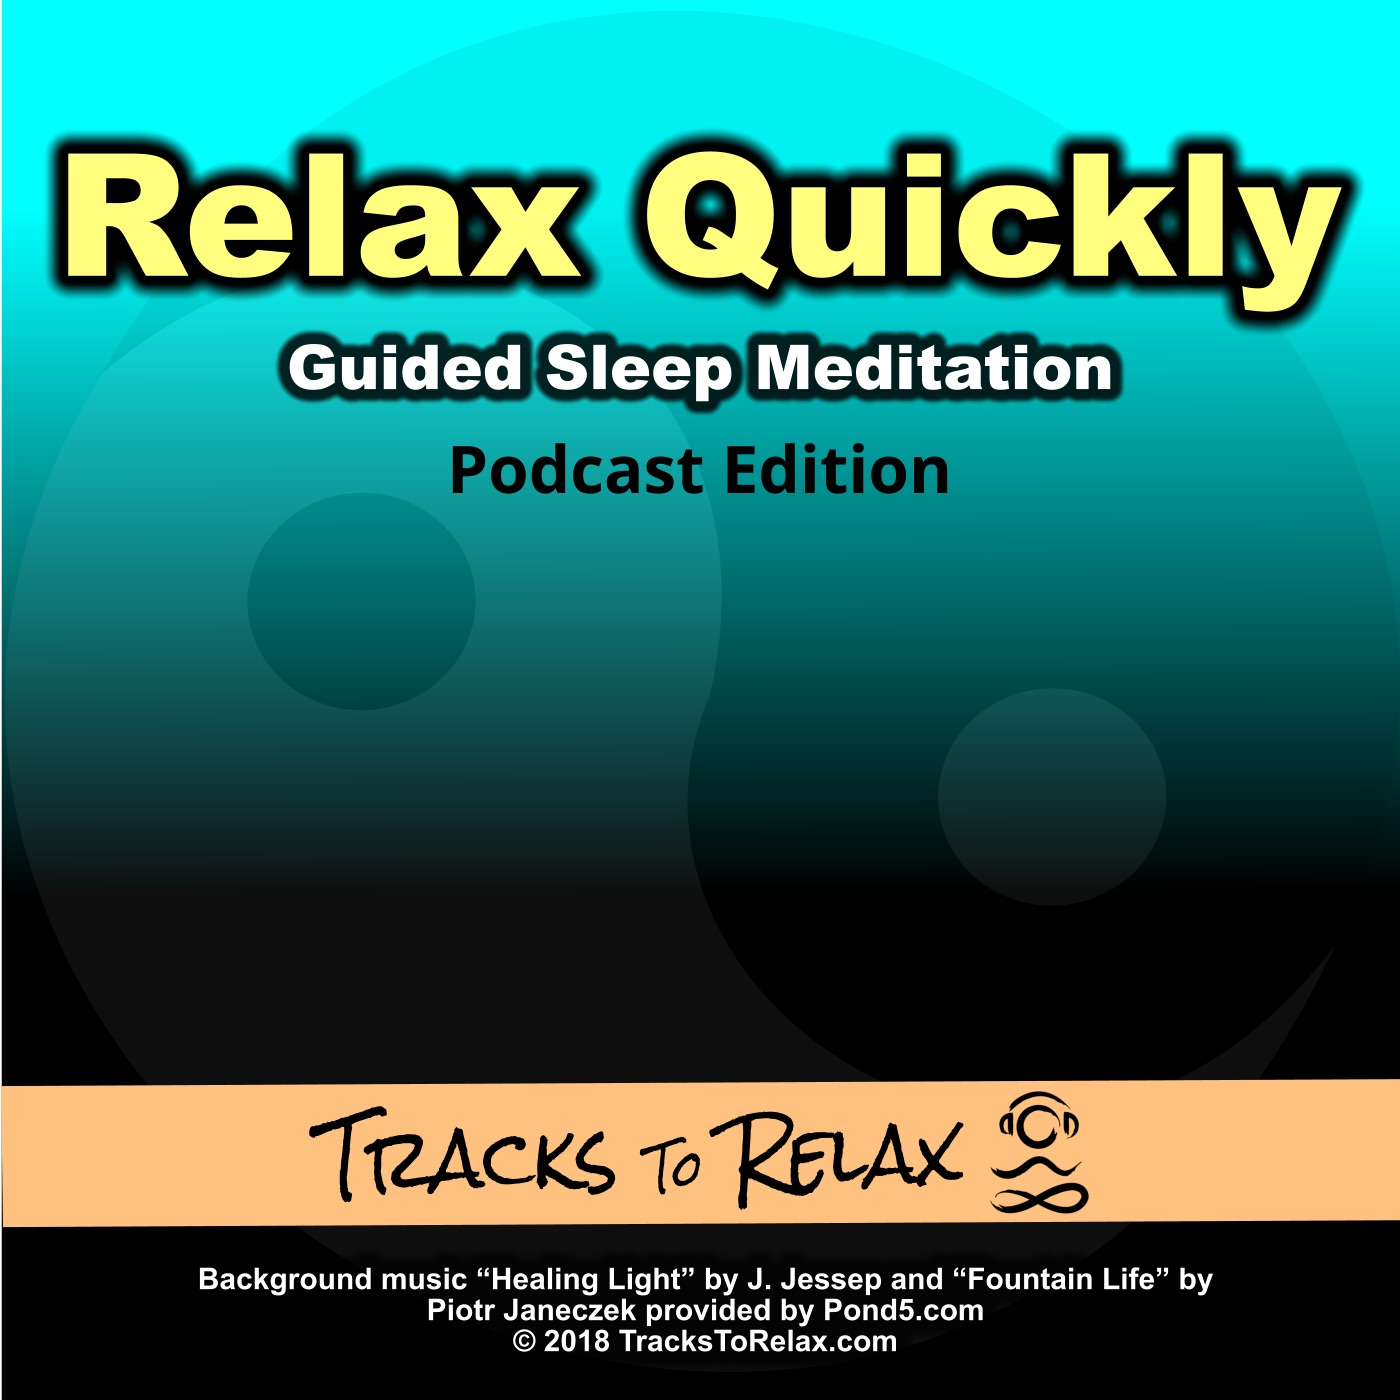 Relax Quickly Sleep Meditation (Free Episode)